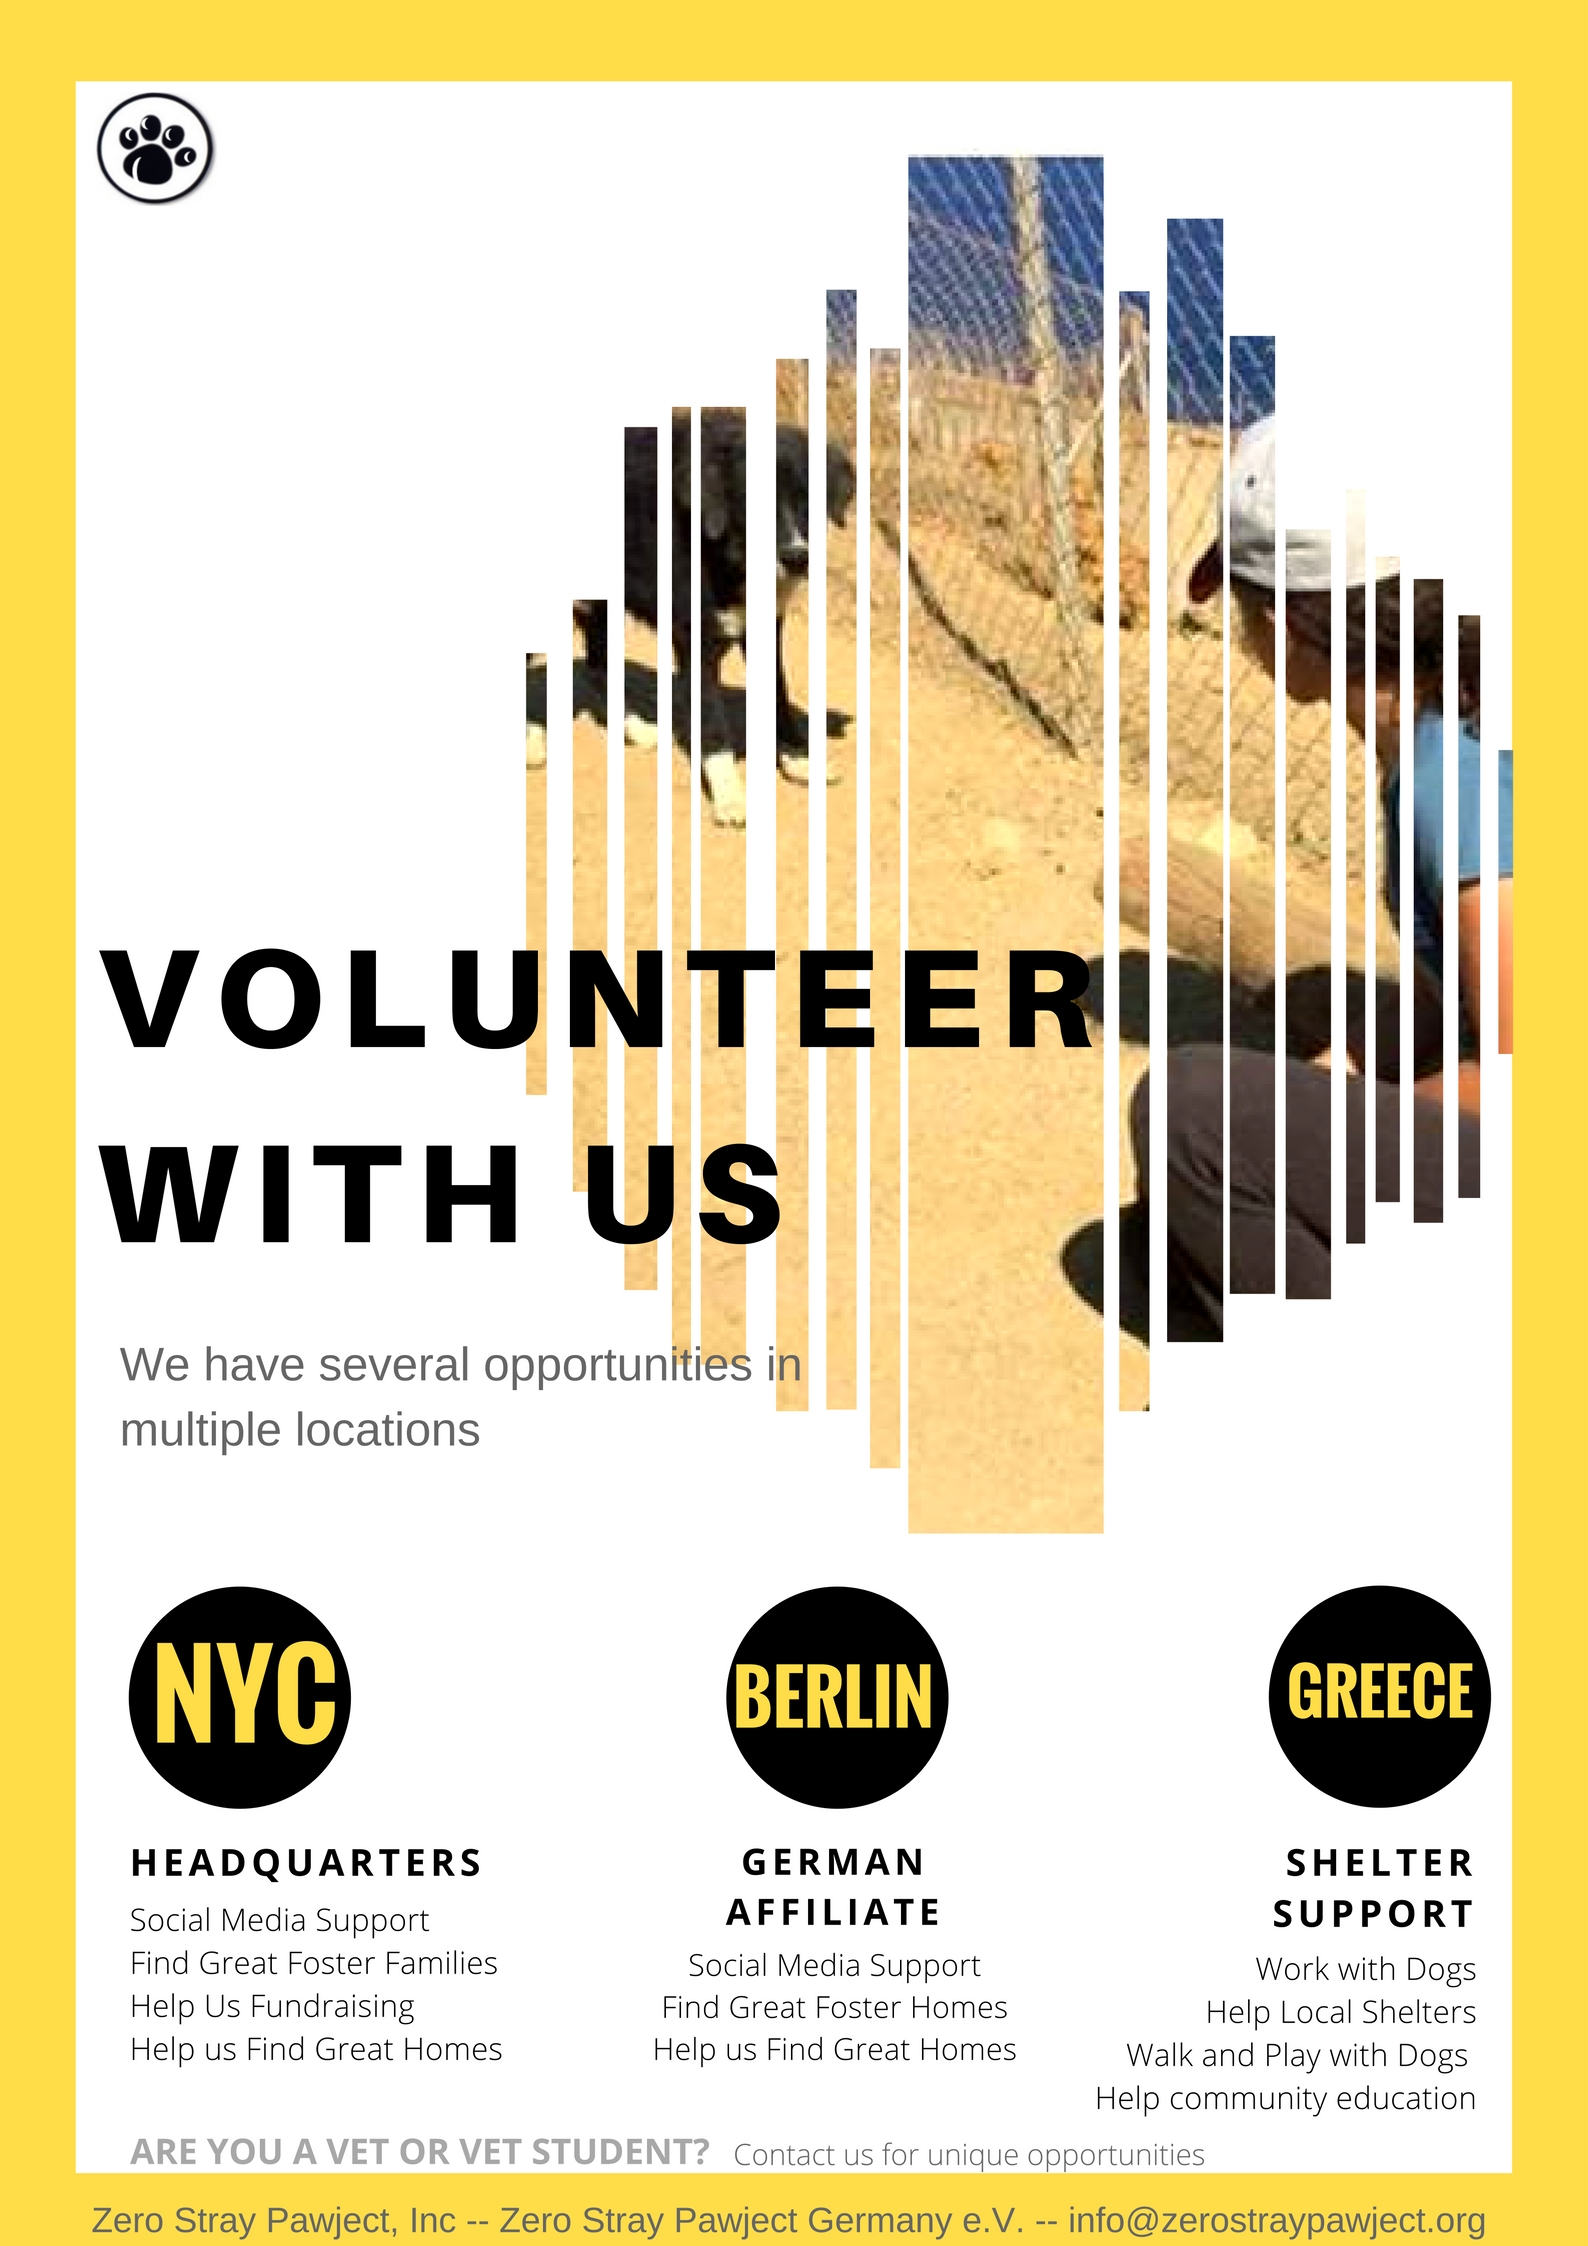 More opportunities. - Contact us using the form below. Tell us about you. What skills do you have? How would you like to help?